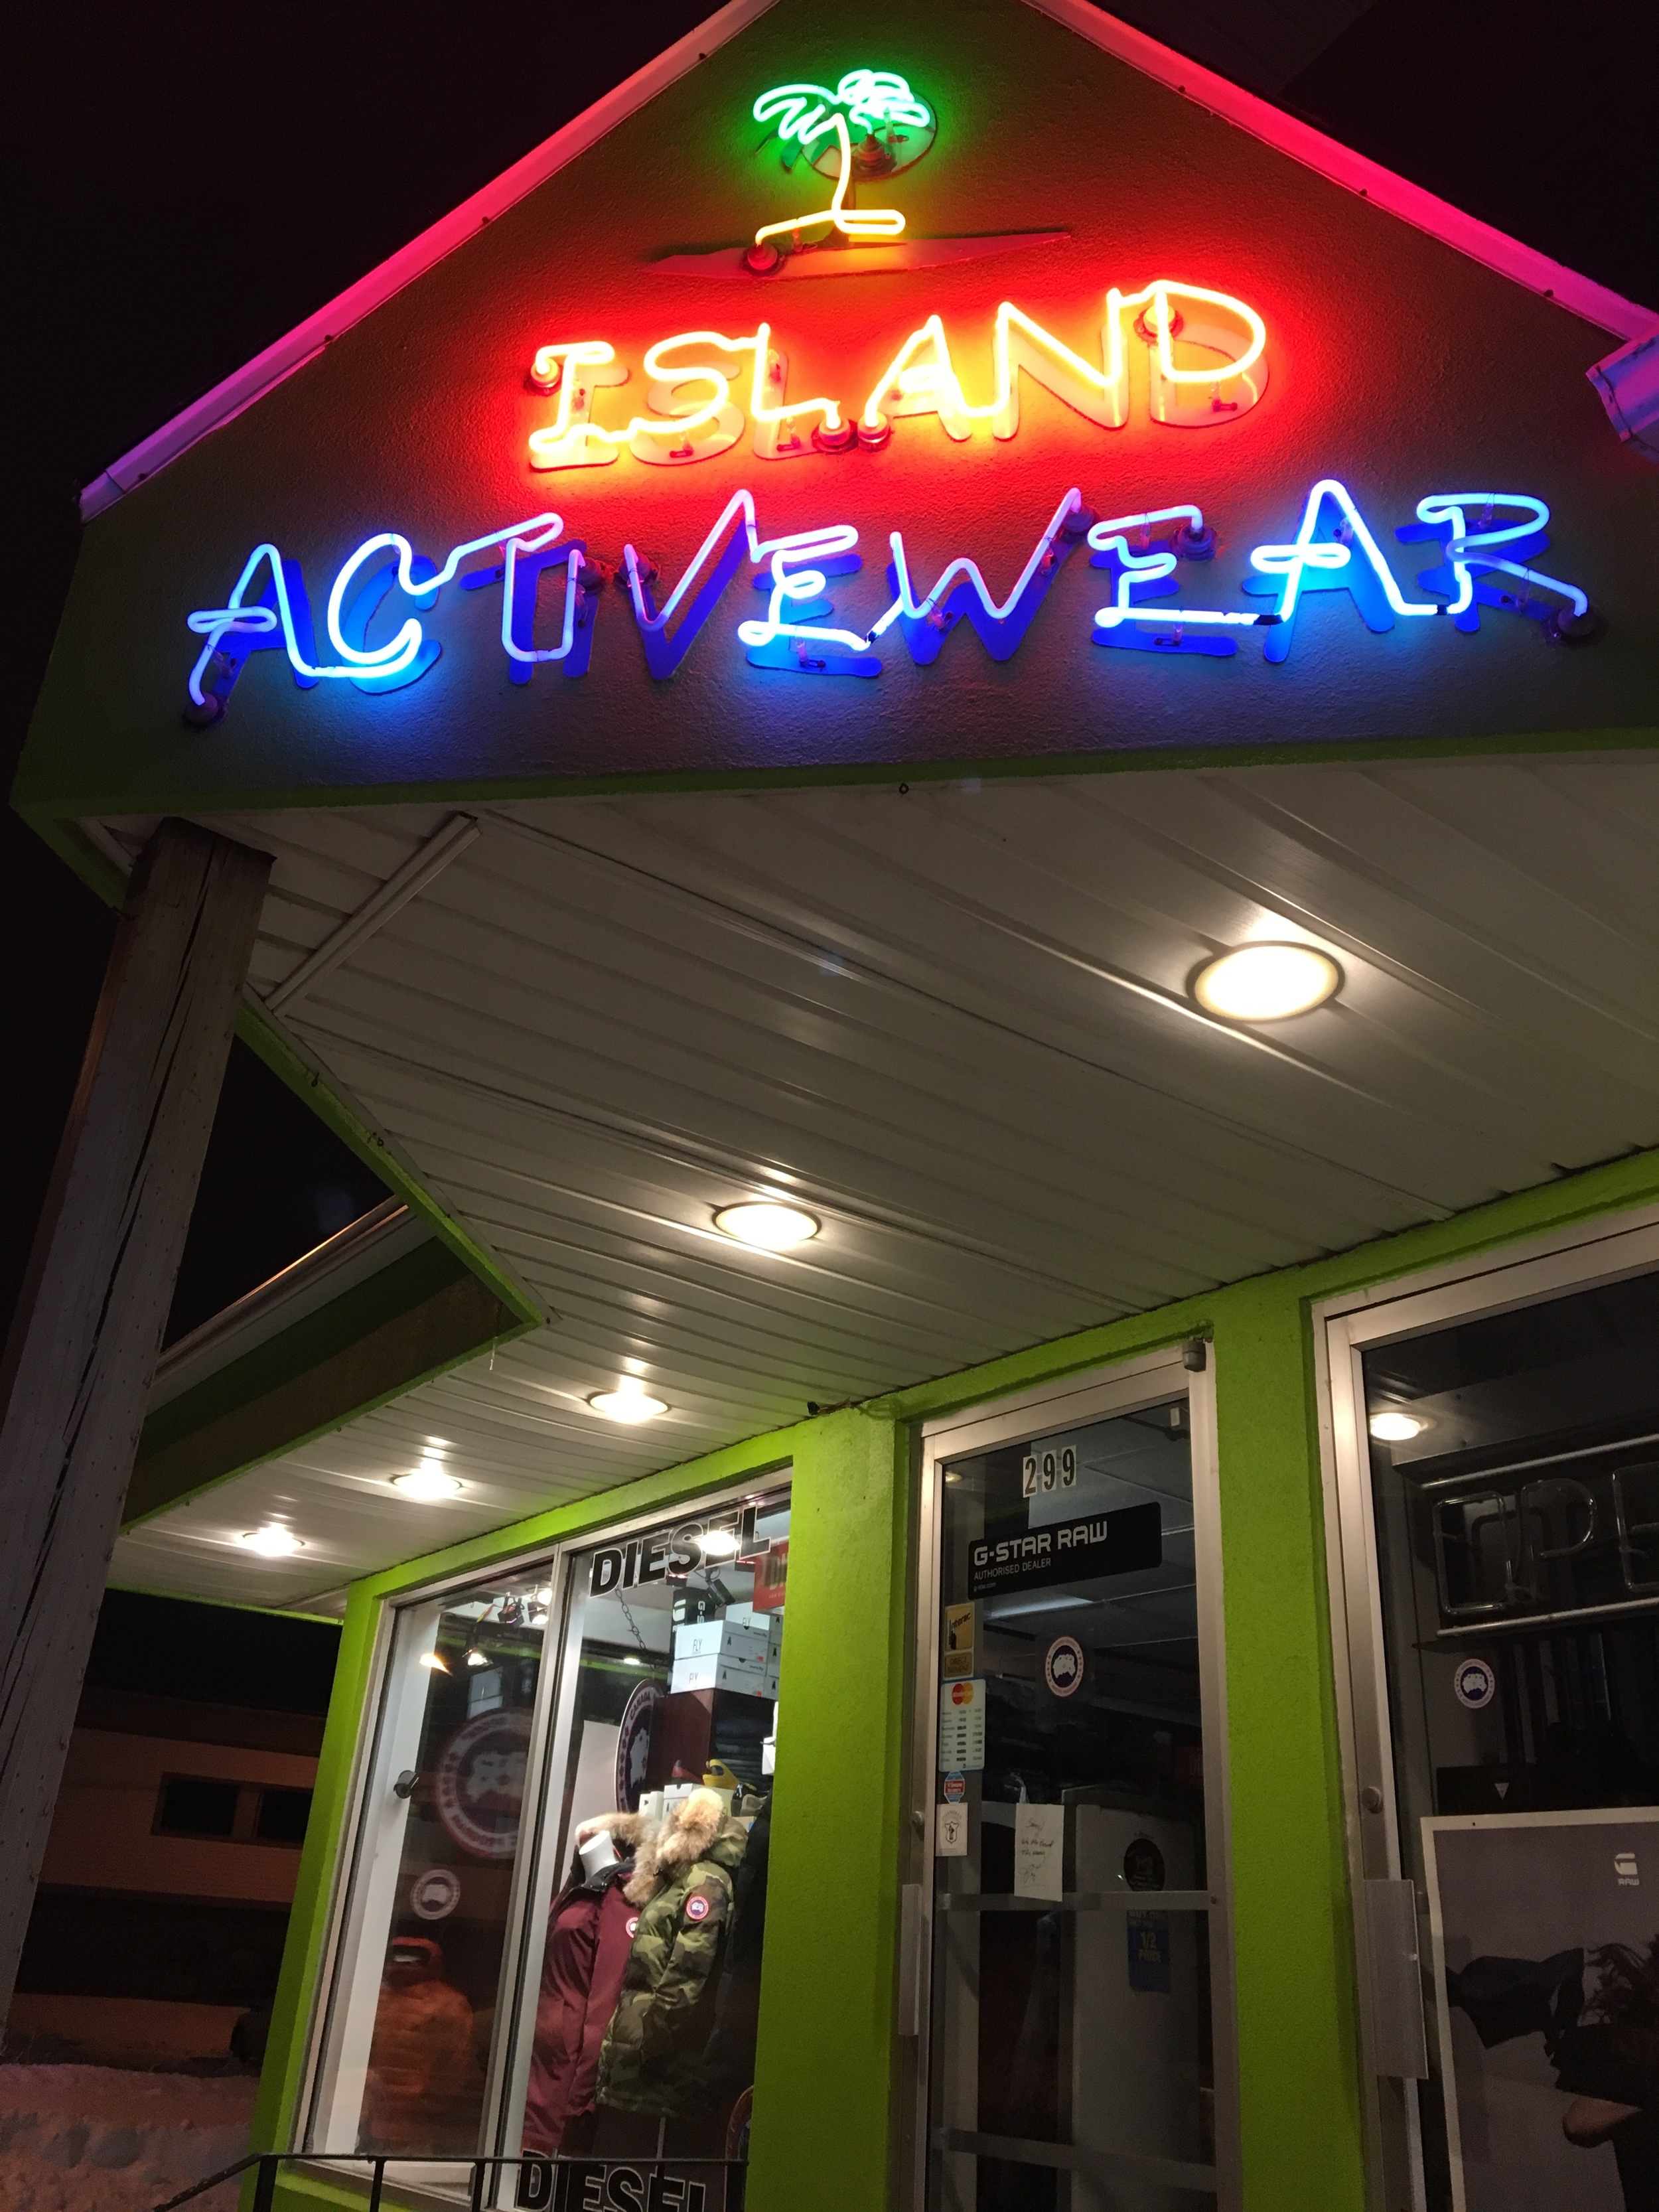 Island Activewear Storefront before renovation in 2016.